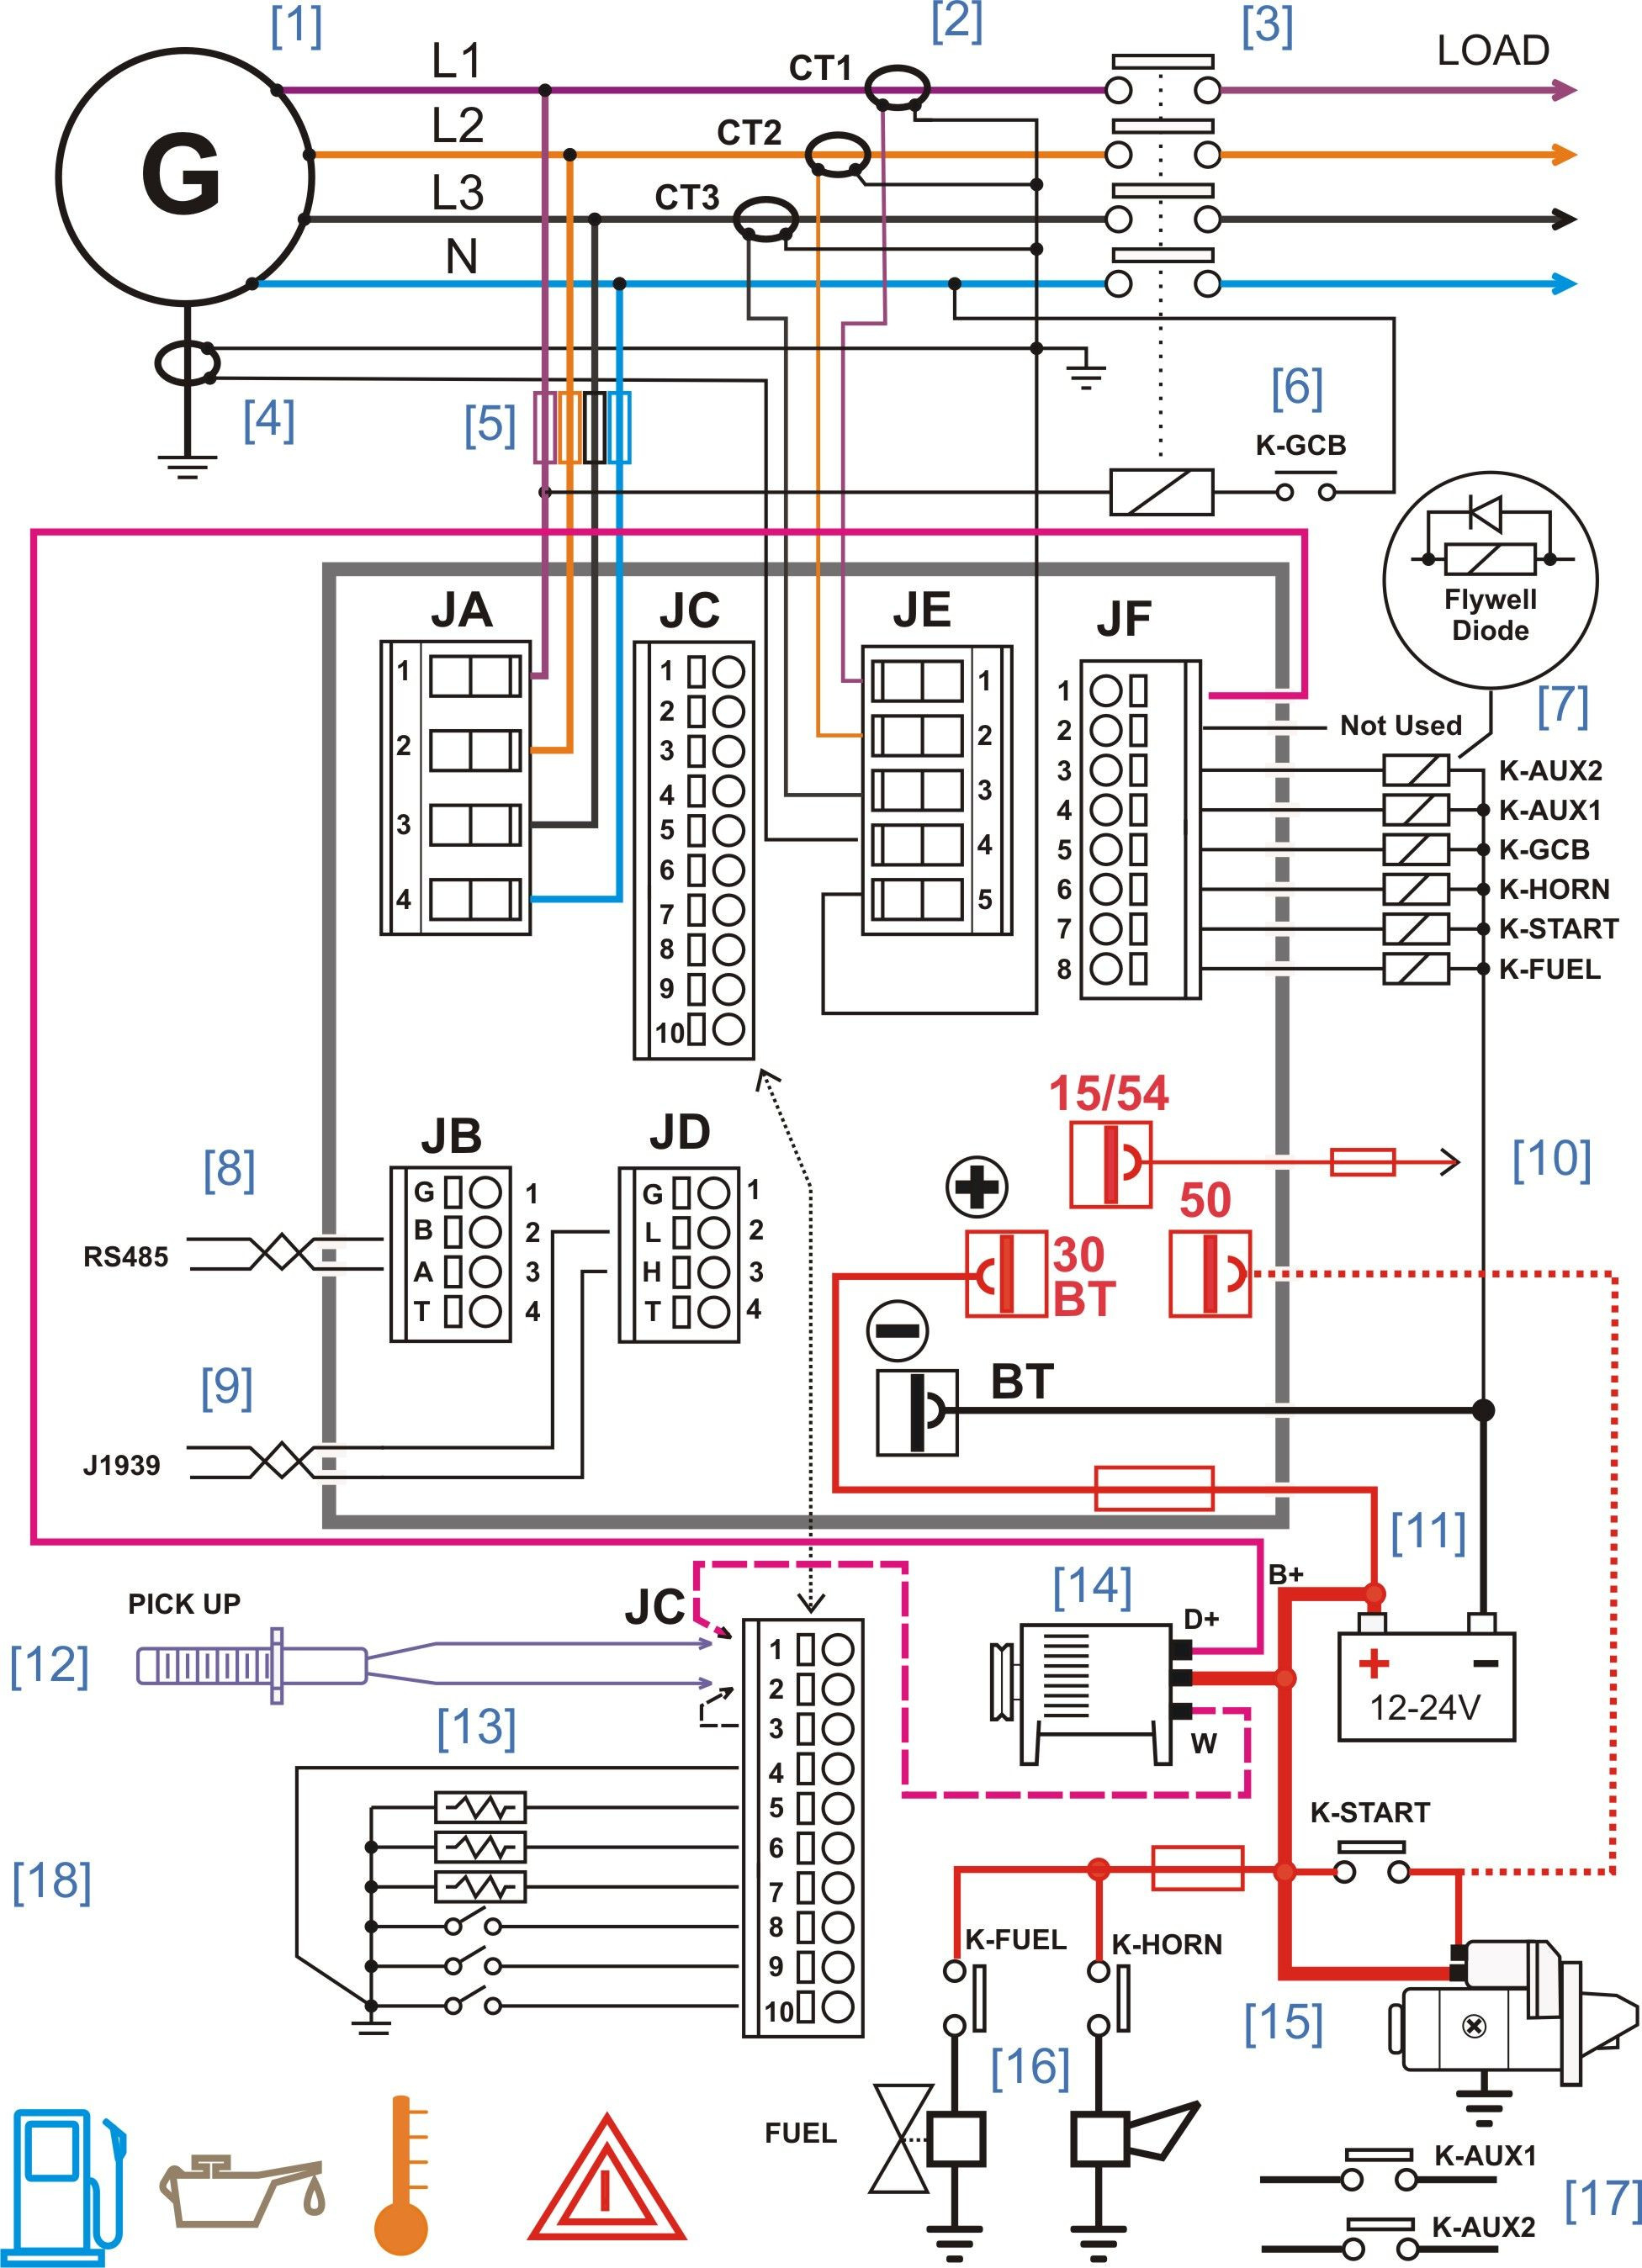 Diagram In Pictures Database Plc Panel Wiring Diagram Software Just Download Or Read Diagram Software Online Casalamm Edu Mx